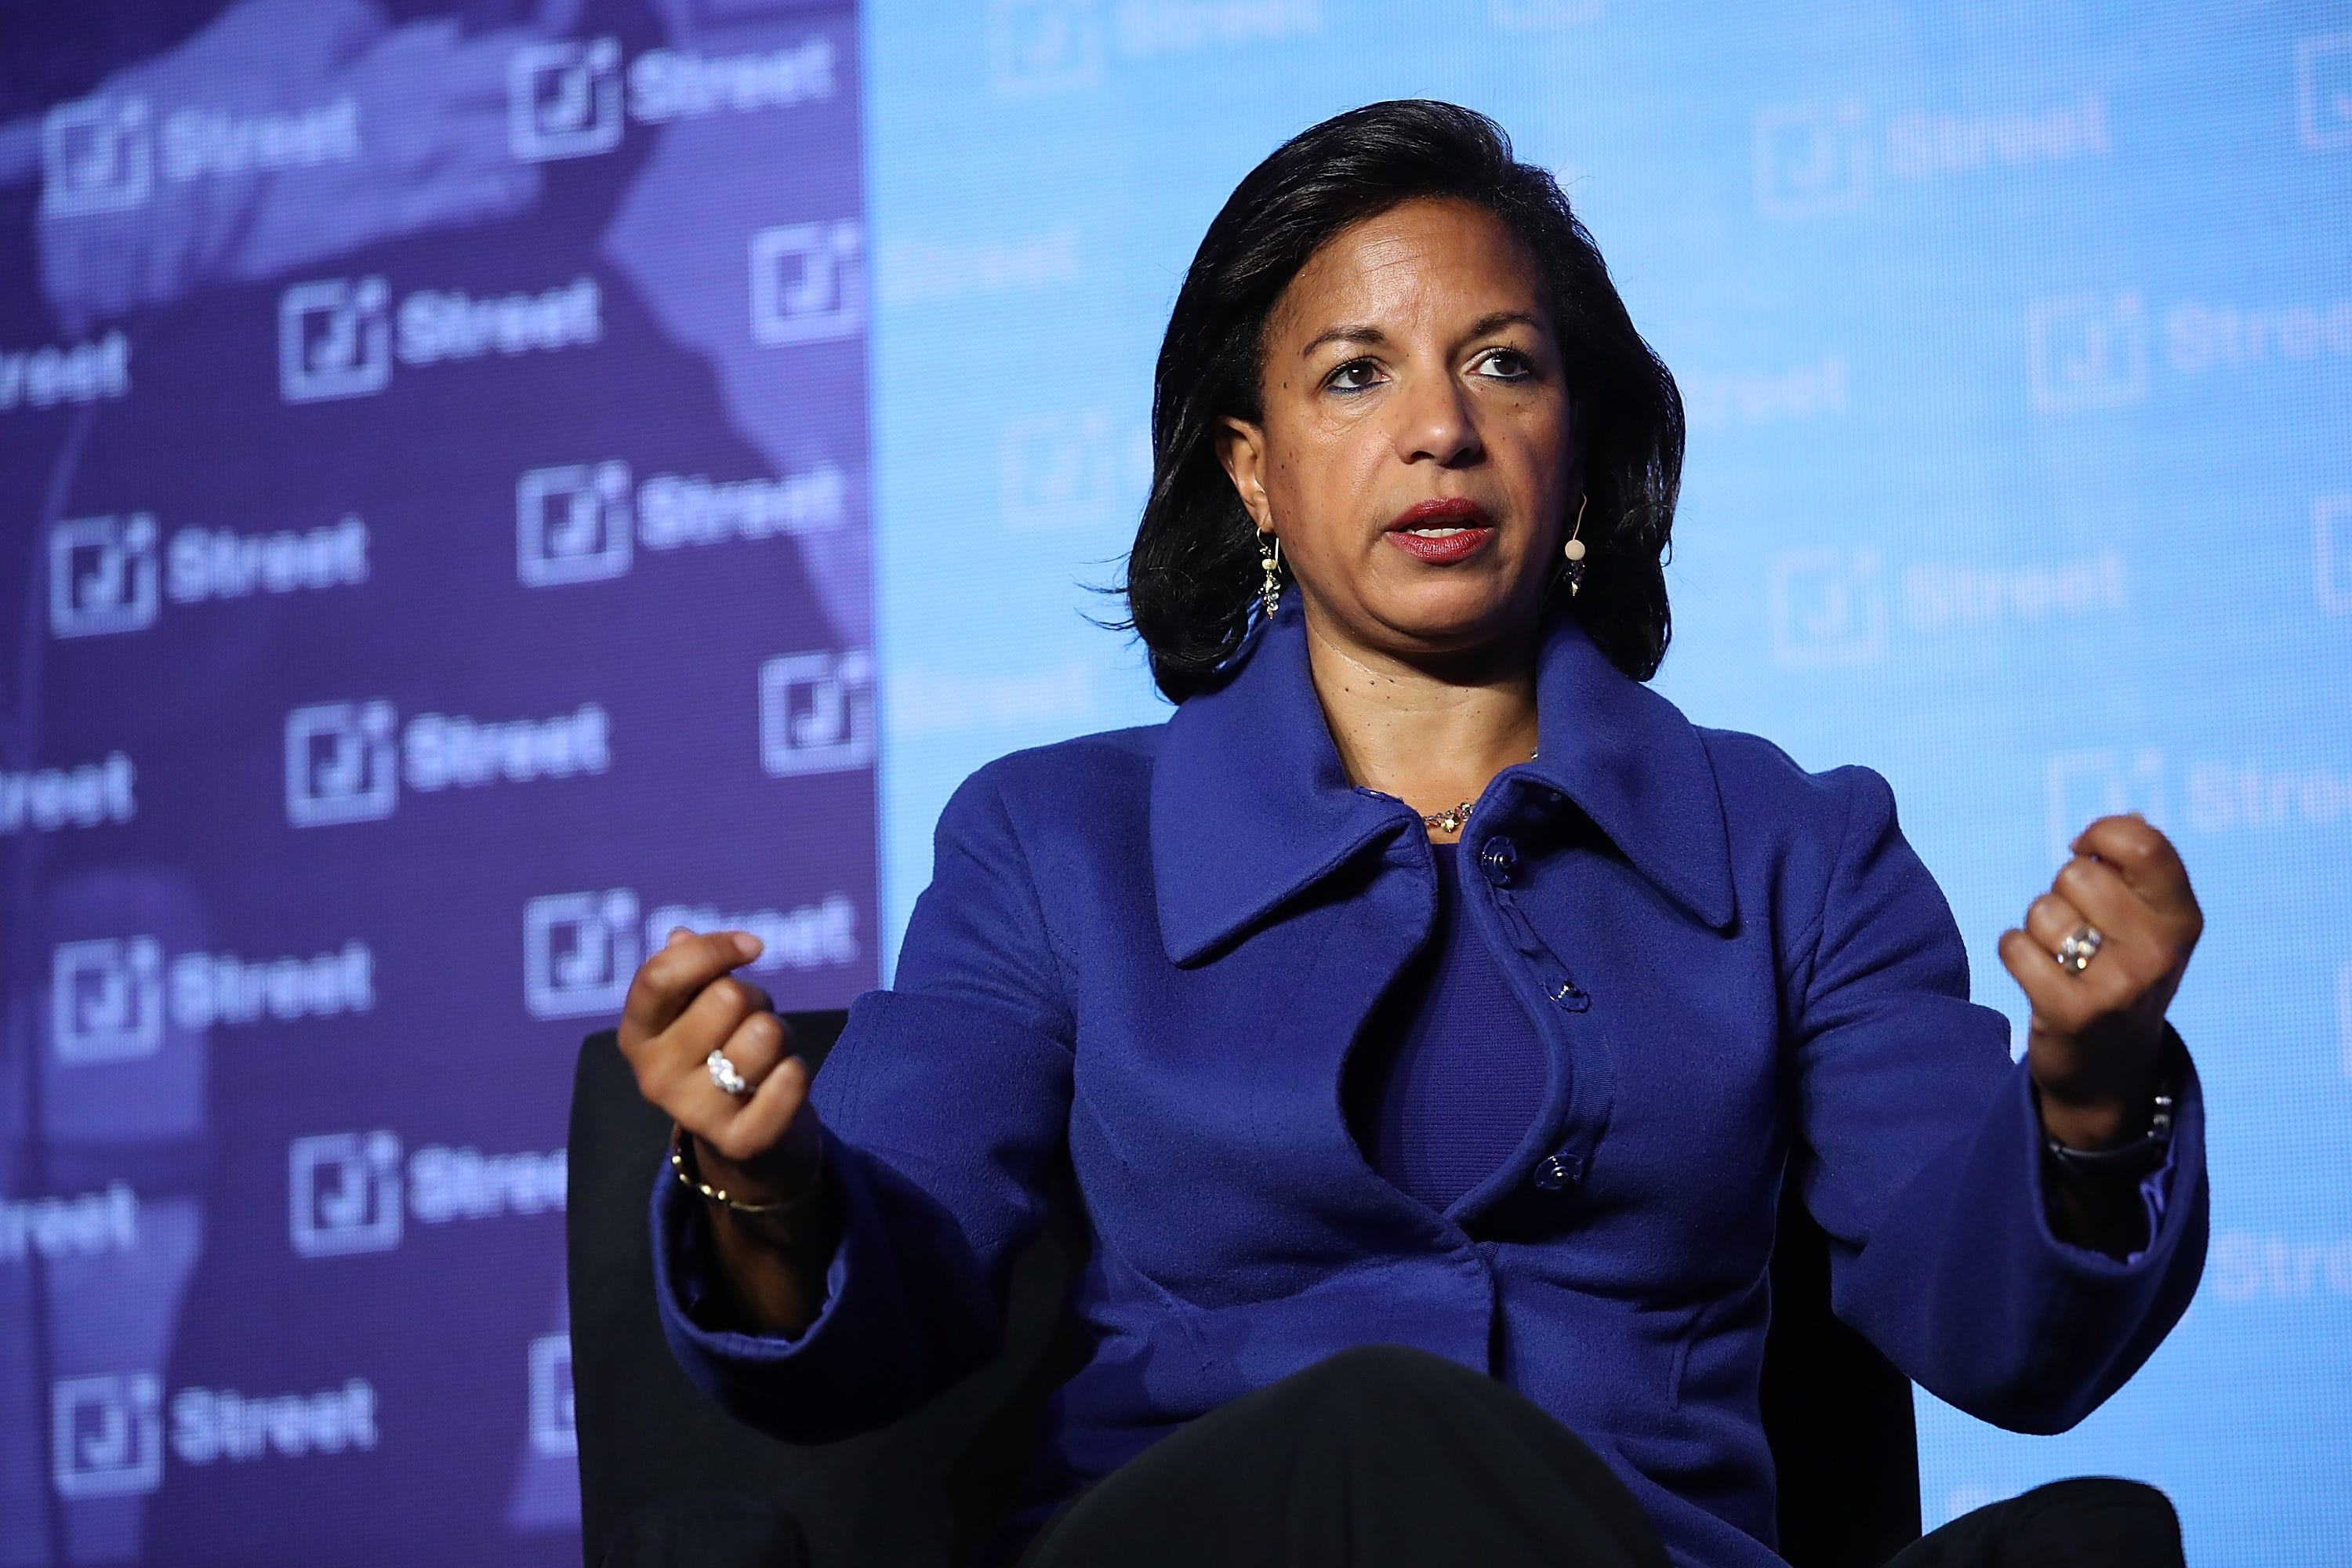 usatoday.com - William Cummings, USA TODAY - Judge orders Susan Rice, other Obama officials to answer questions in Clinton email case